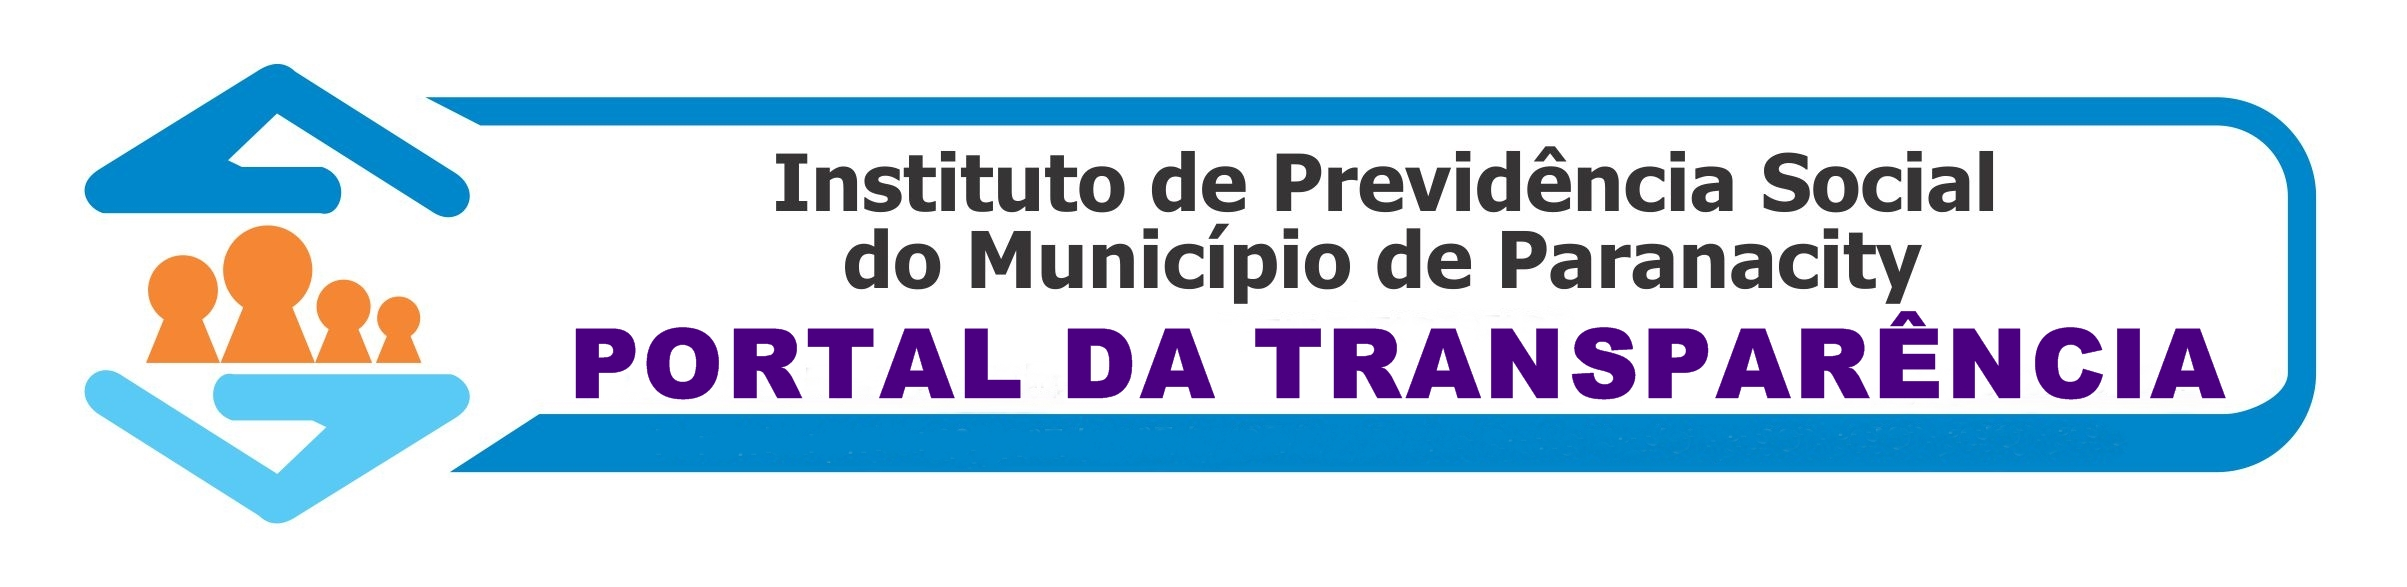 Instituto de Previd�ncia Social do Munic�pio de Paranacity